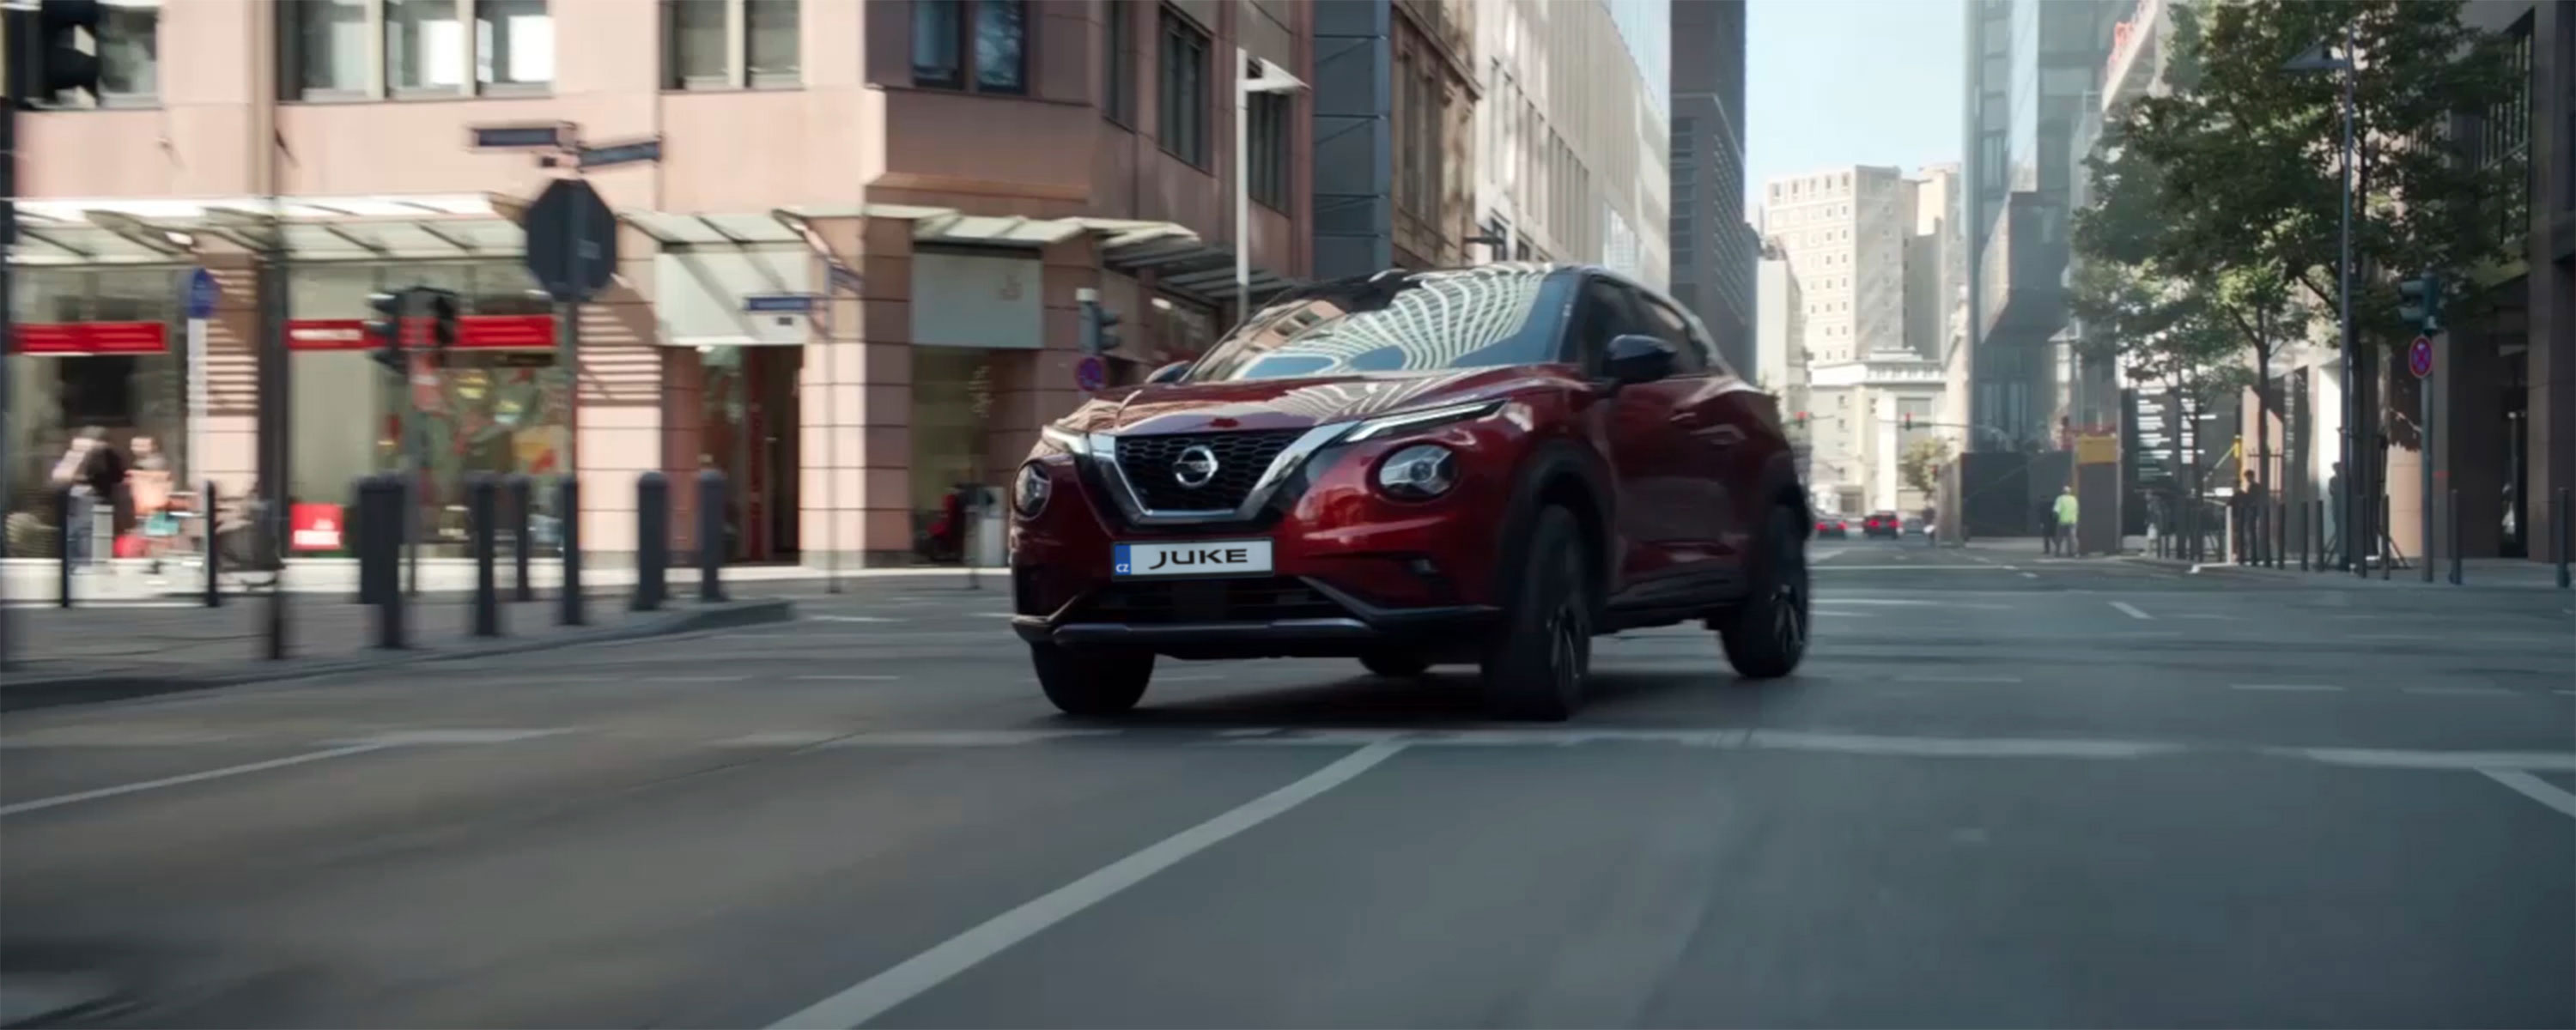 Nissan JUKE video preview image